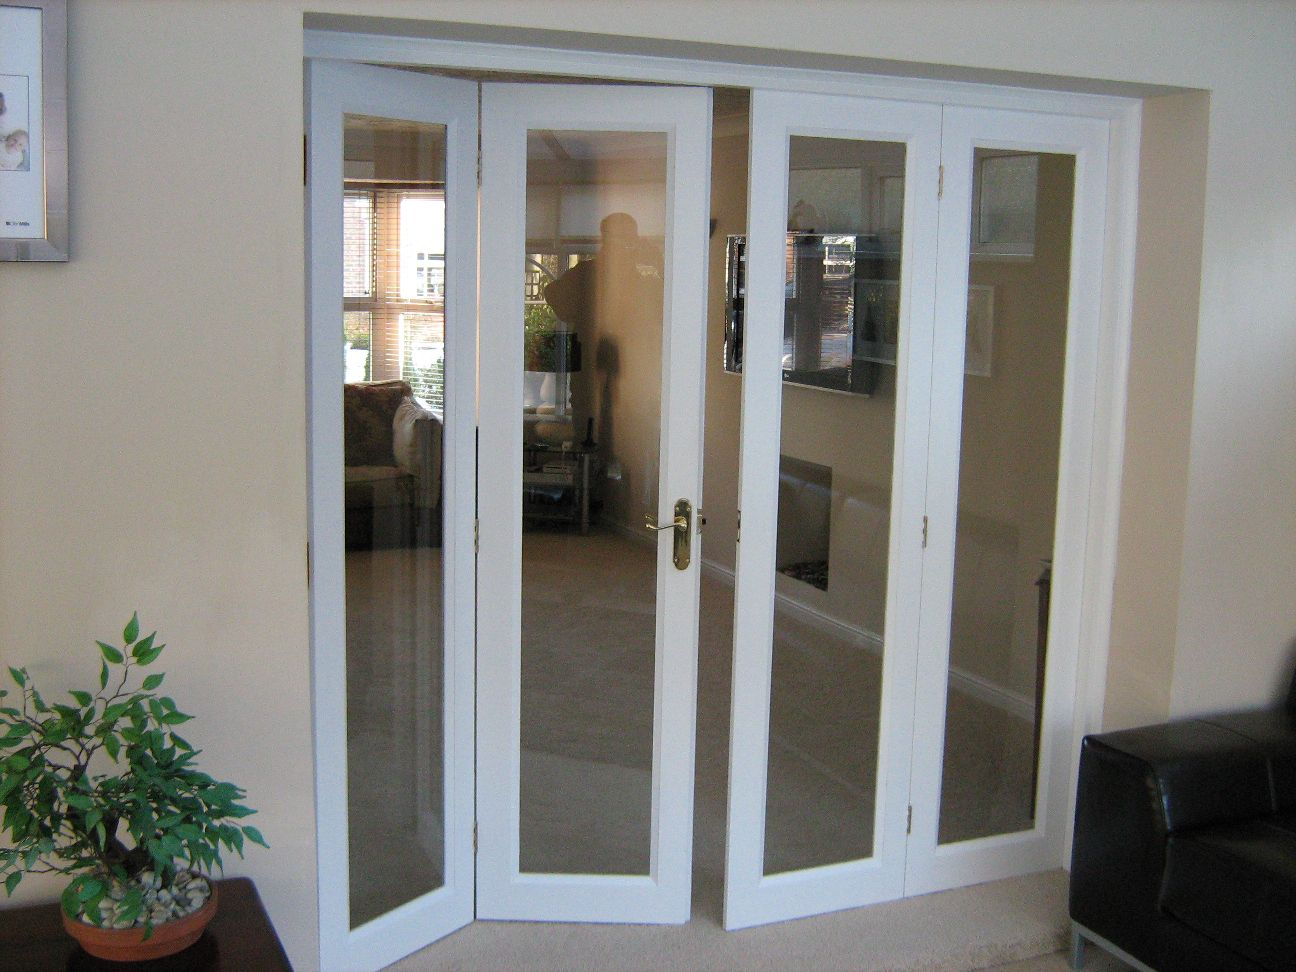 Folding Doors By Merrin Joinery Foldingdoors Doors Internal Oak Exterior Doors French Doors French Doors Interior